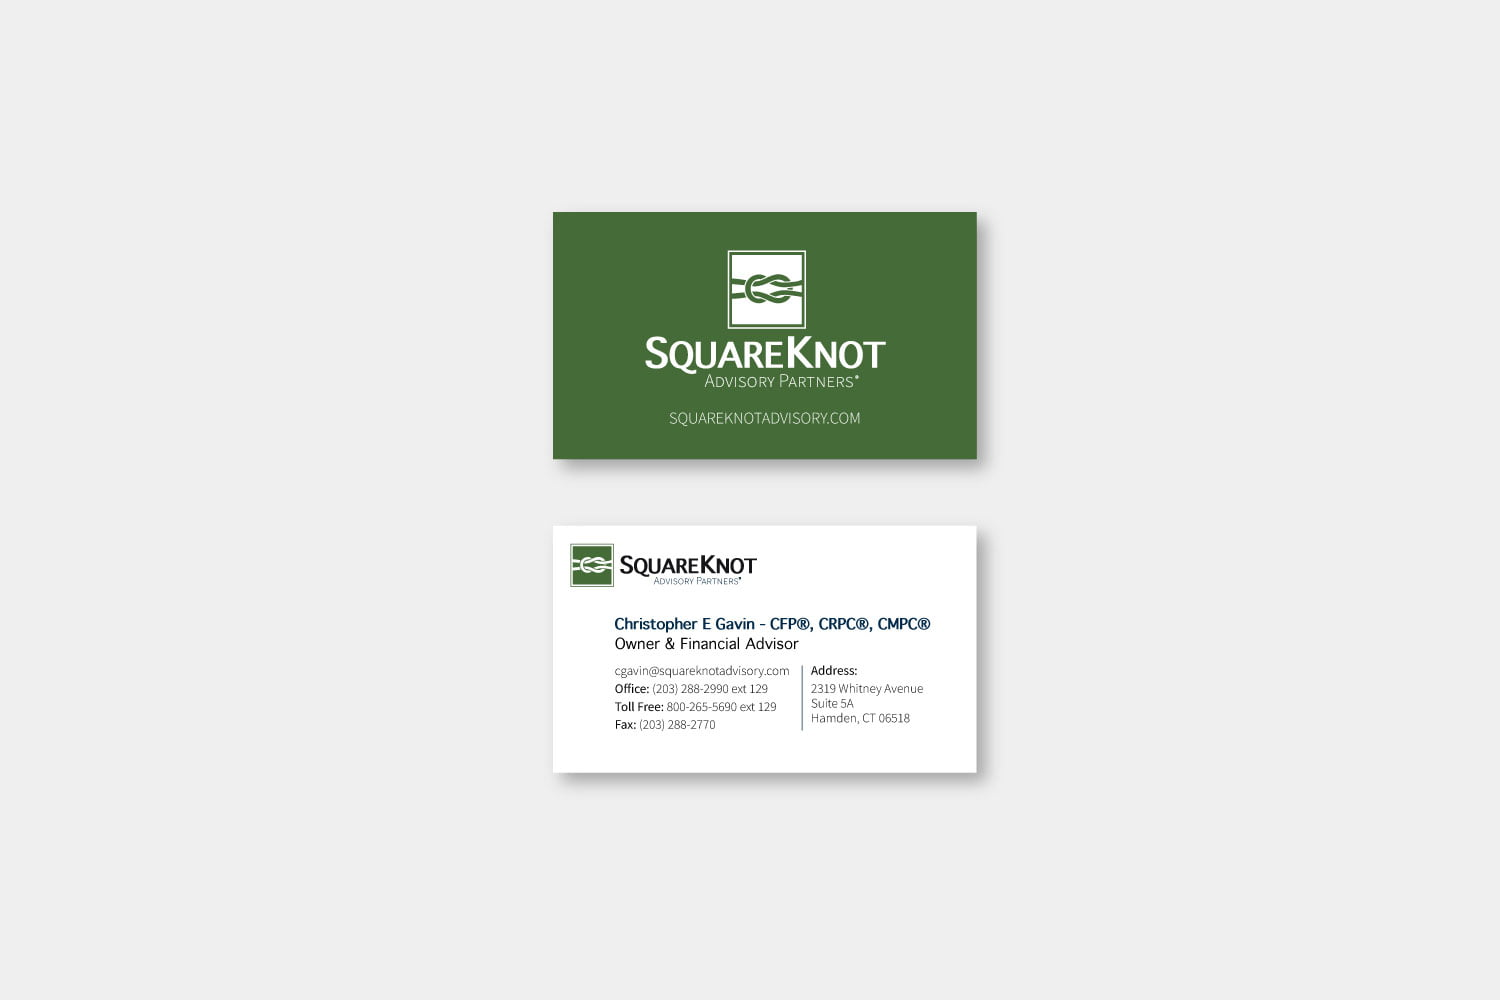 Branding, logo, and business card designed for Squareknot Advisory Partners